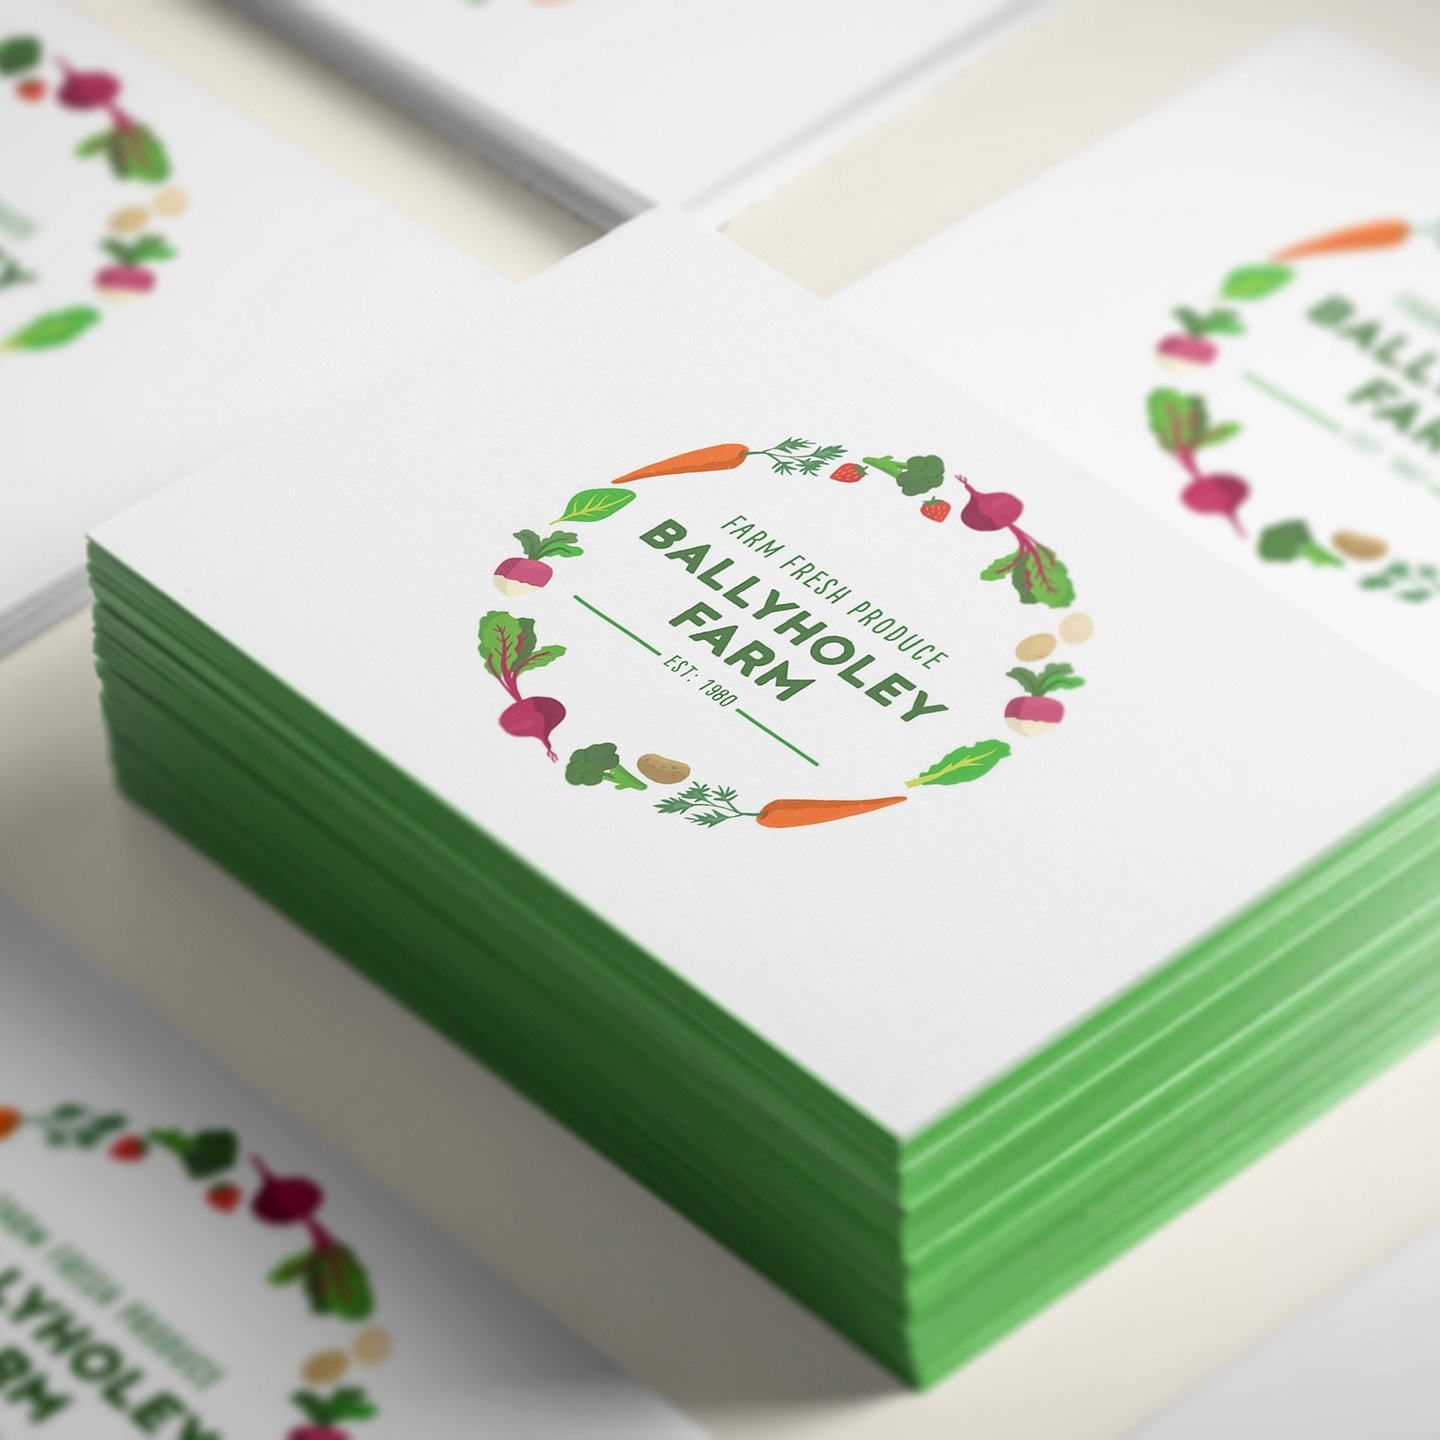 ballyholey-farm-branding-ruth-graham-illustrator